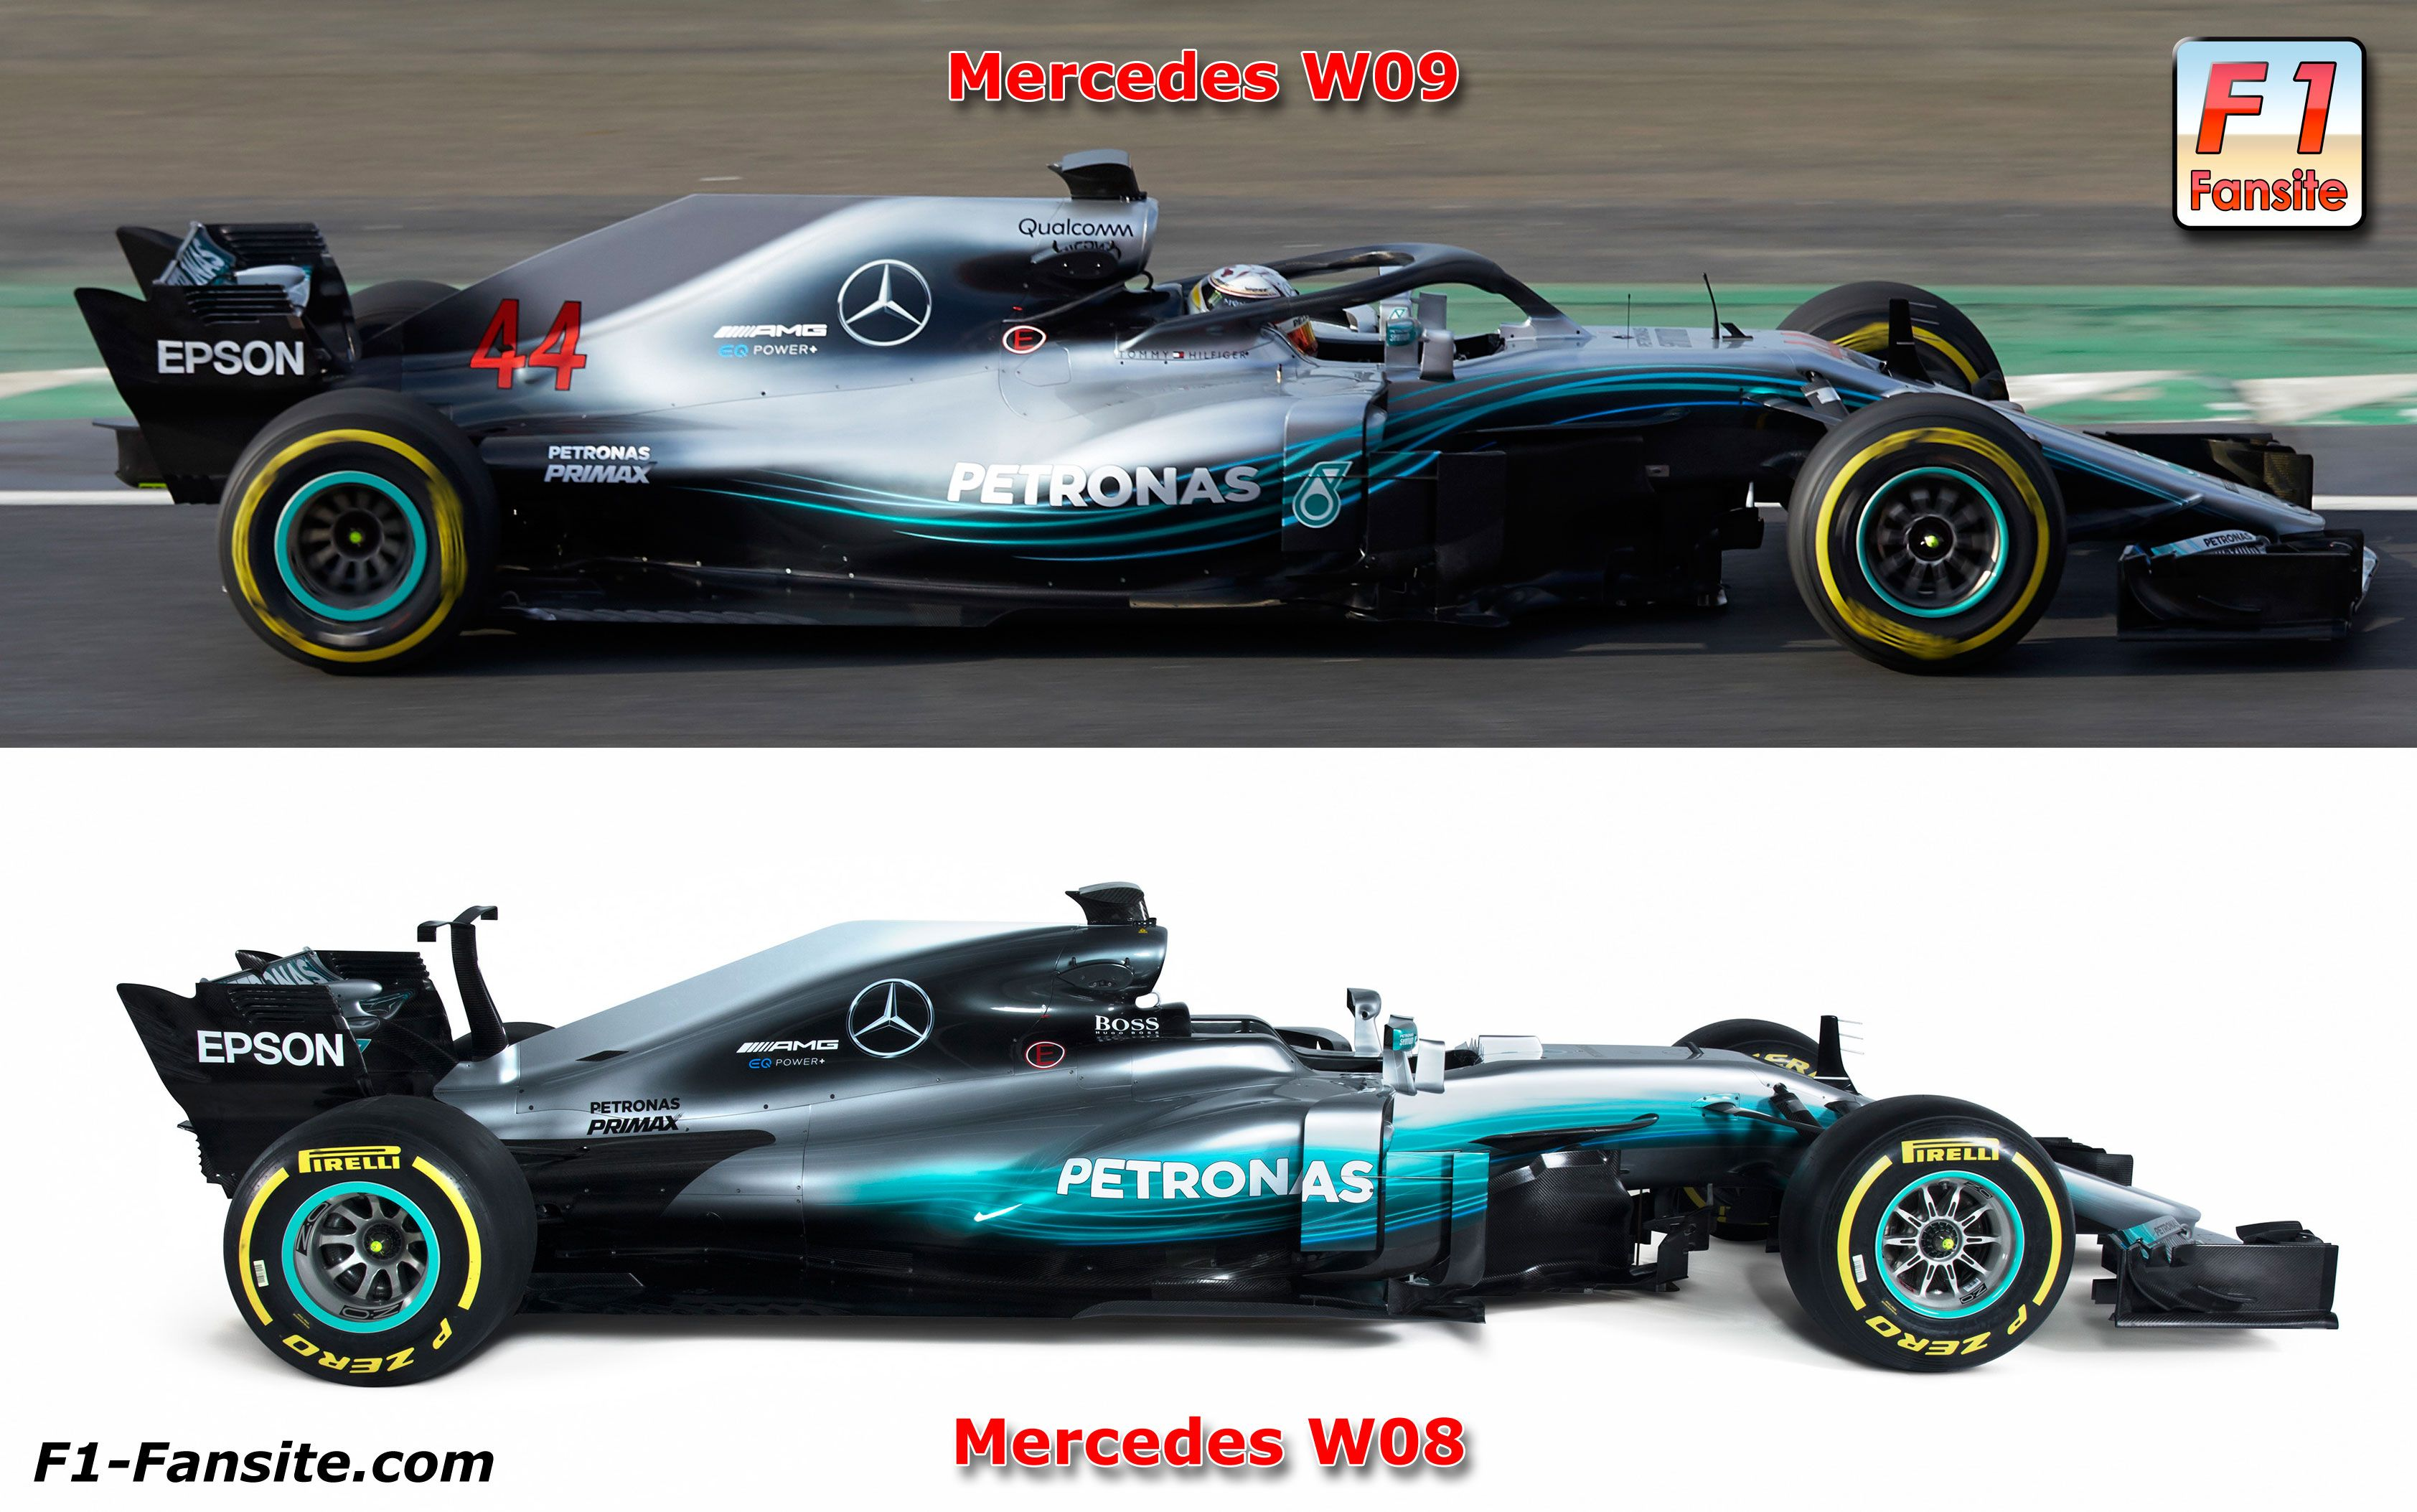 mercedes w08 vs mercedes w09 side view 2018 f1 launch pictures pinterest f1 amg petronas. Black Bedroom Furniture Sets. Home Design Ideas